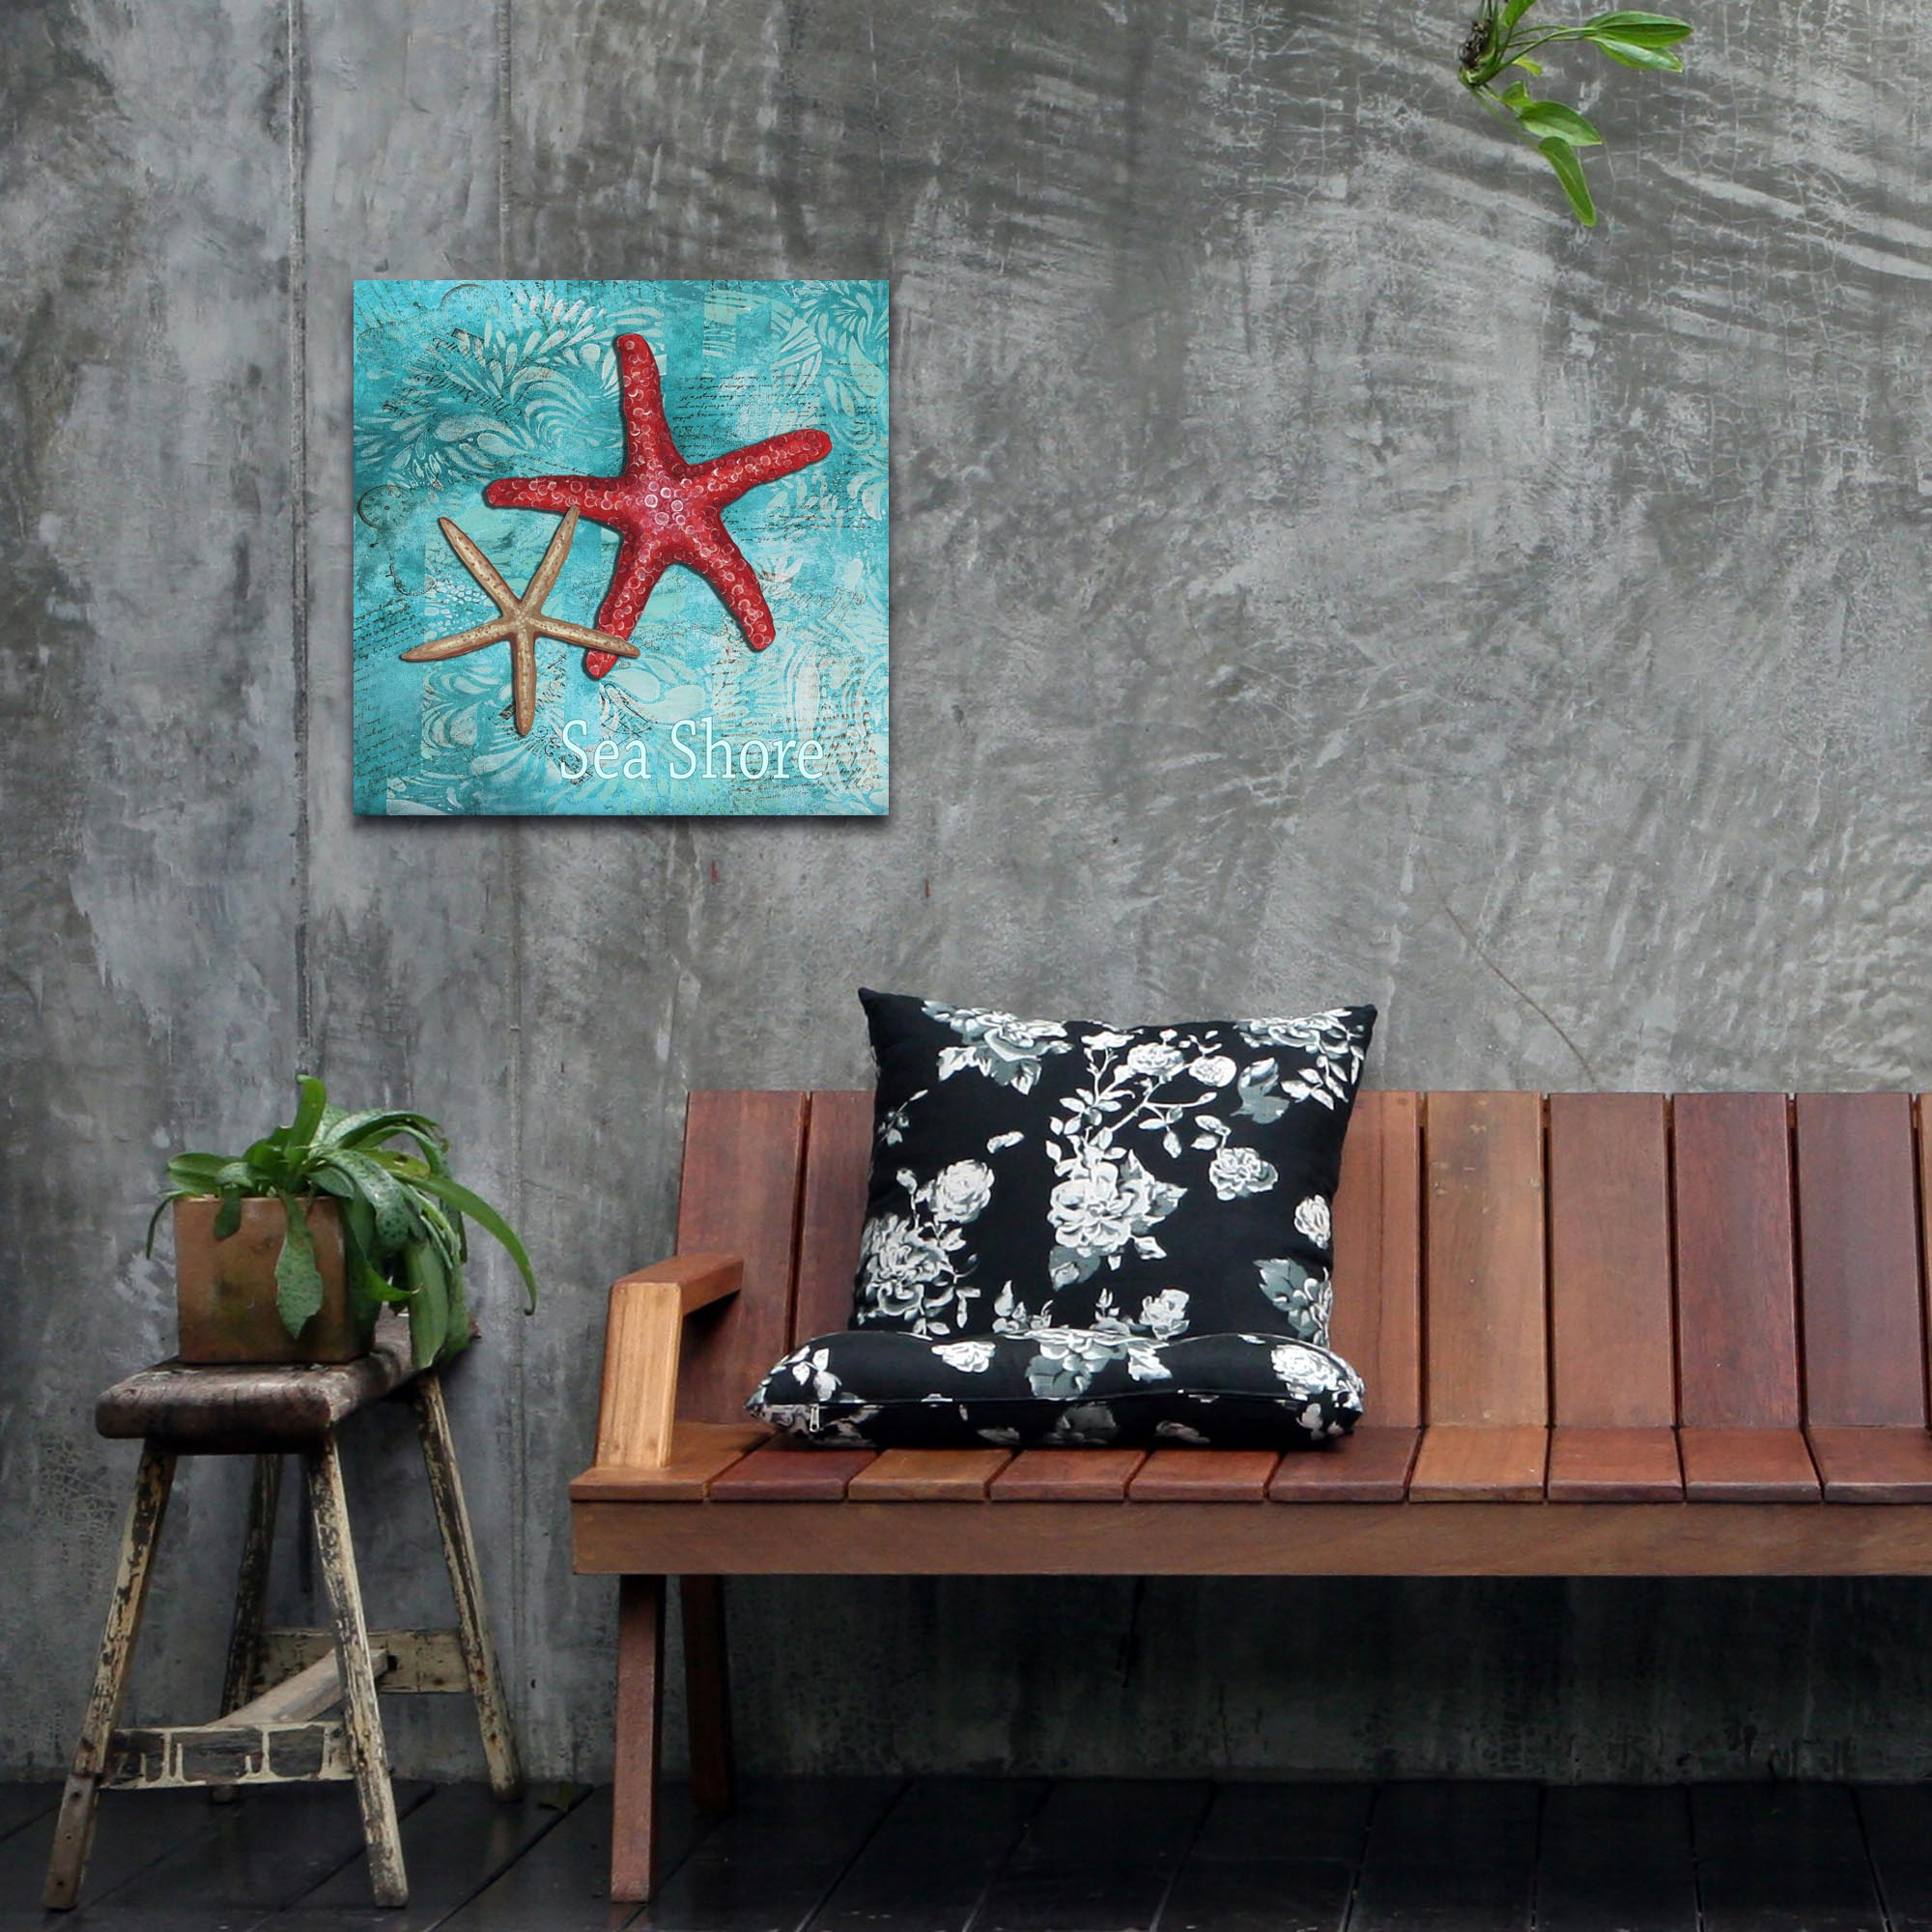 Starfish Wall Art 'Sea Shore' - Coastal Decor on Metal or Acrylic - Lifestyle View